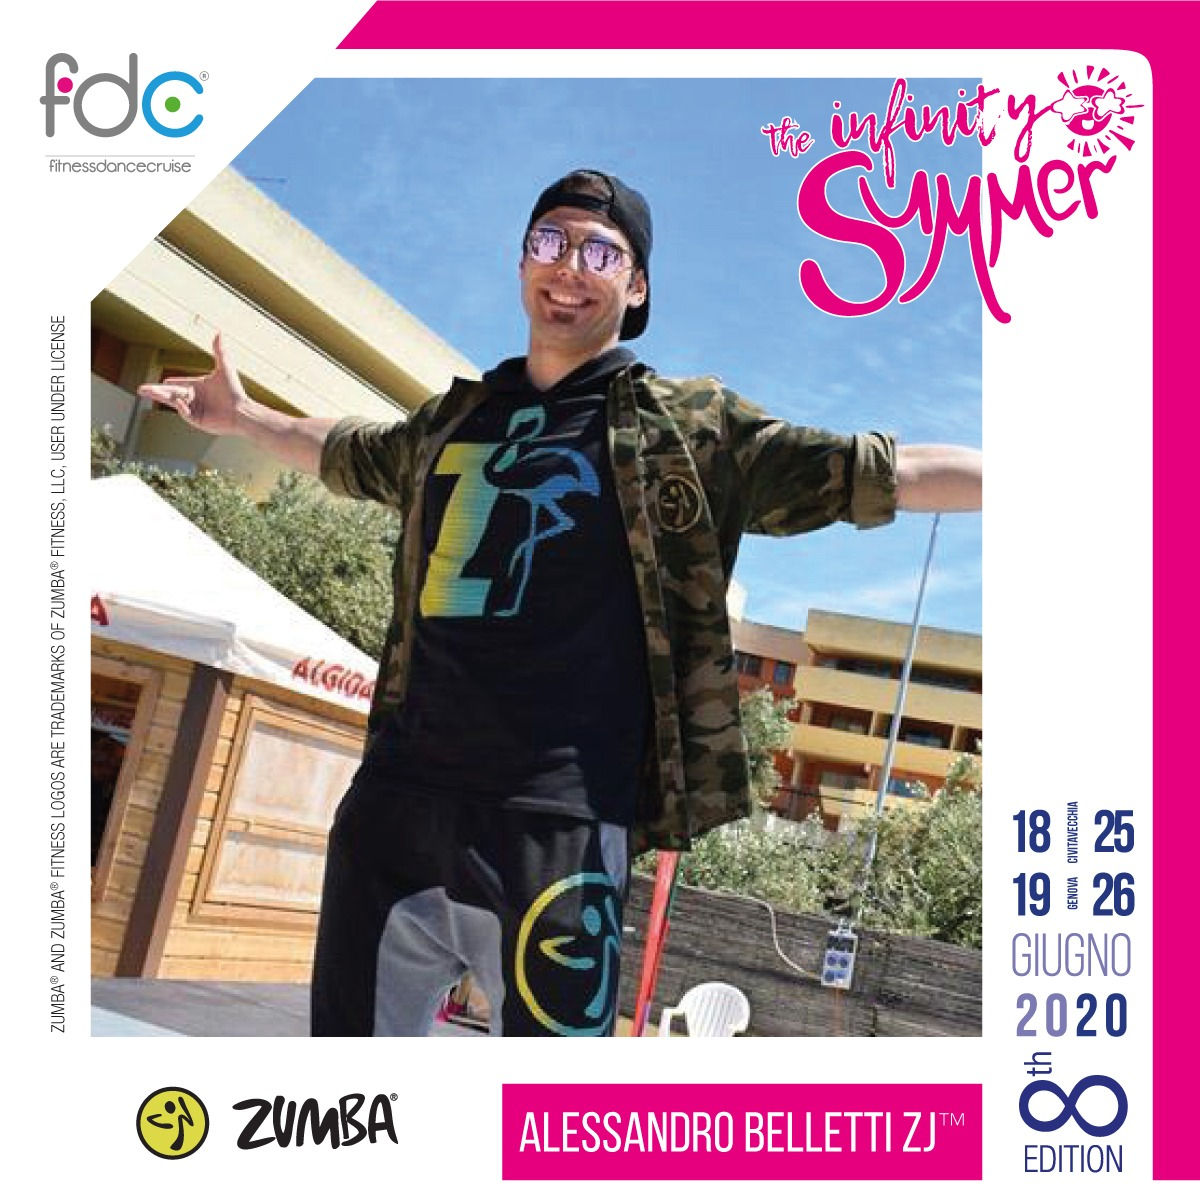 Zumba FDC Presenter Alessandro Belletti